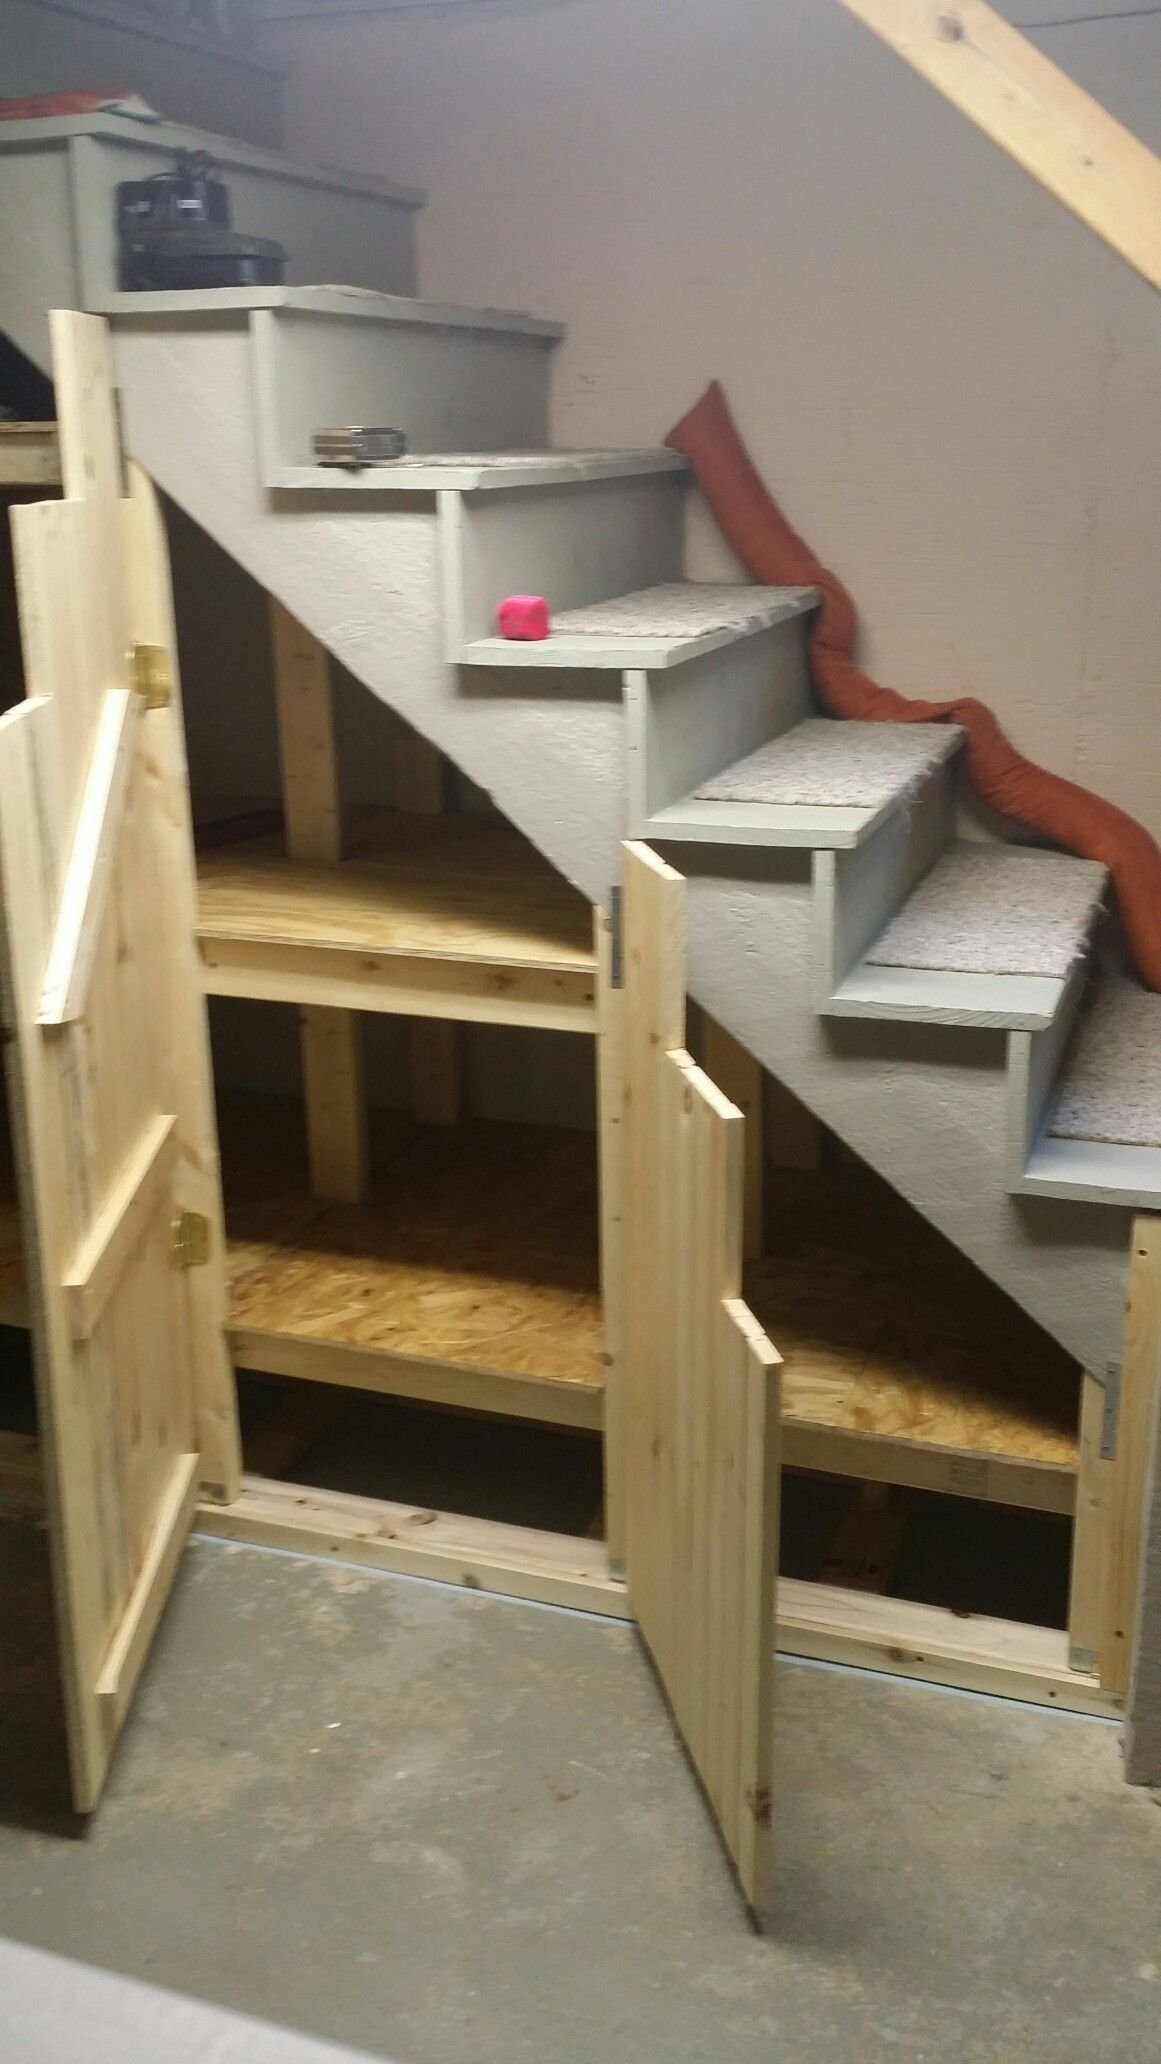 Storage Under The Basement Stairs For The Home Sous Sol